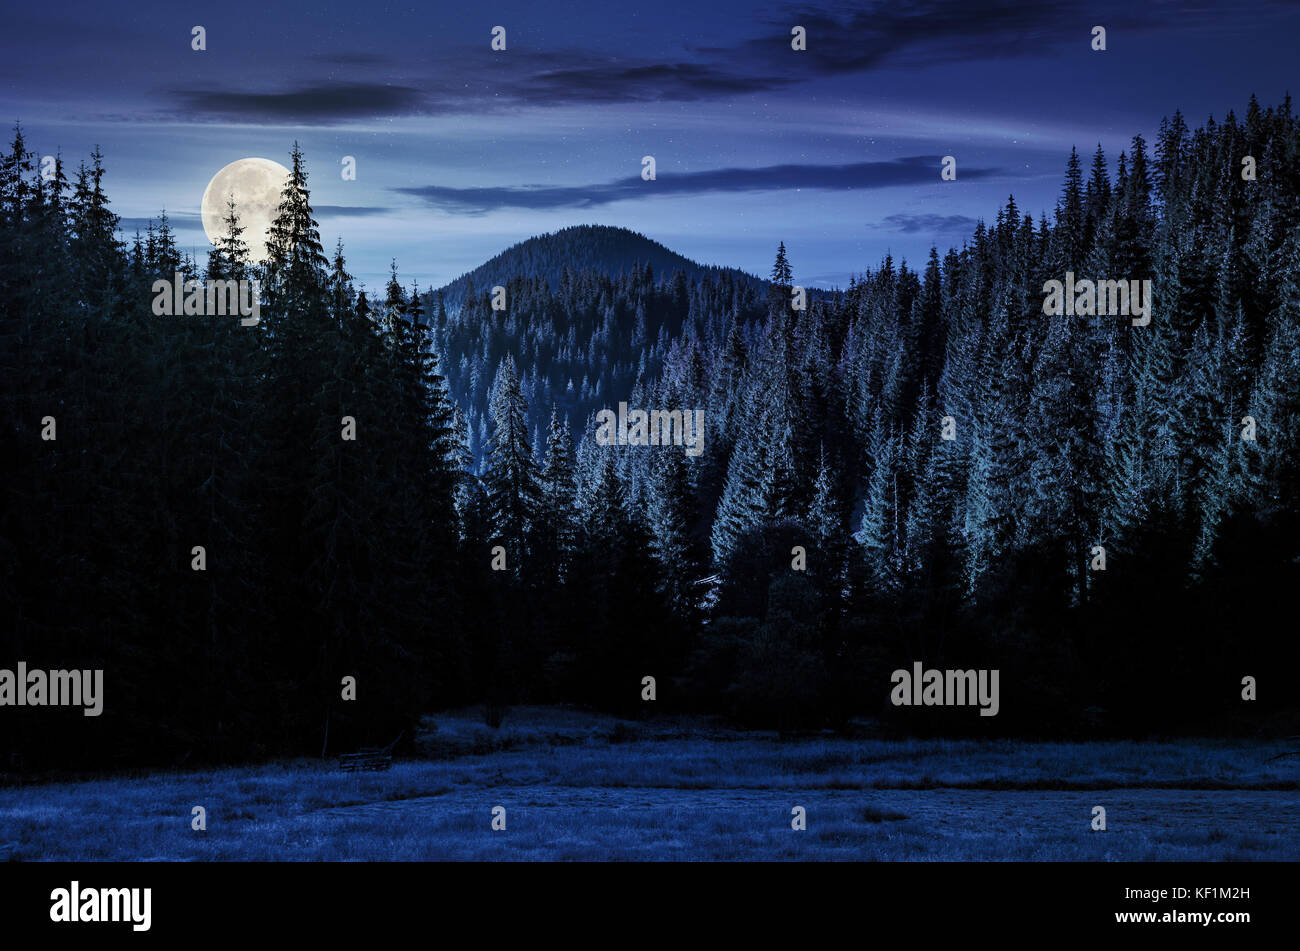 Beautiful Nature Scenery In Mountains With Spruce Forest At Night In Stock Photo Alamy